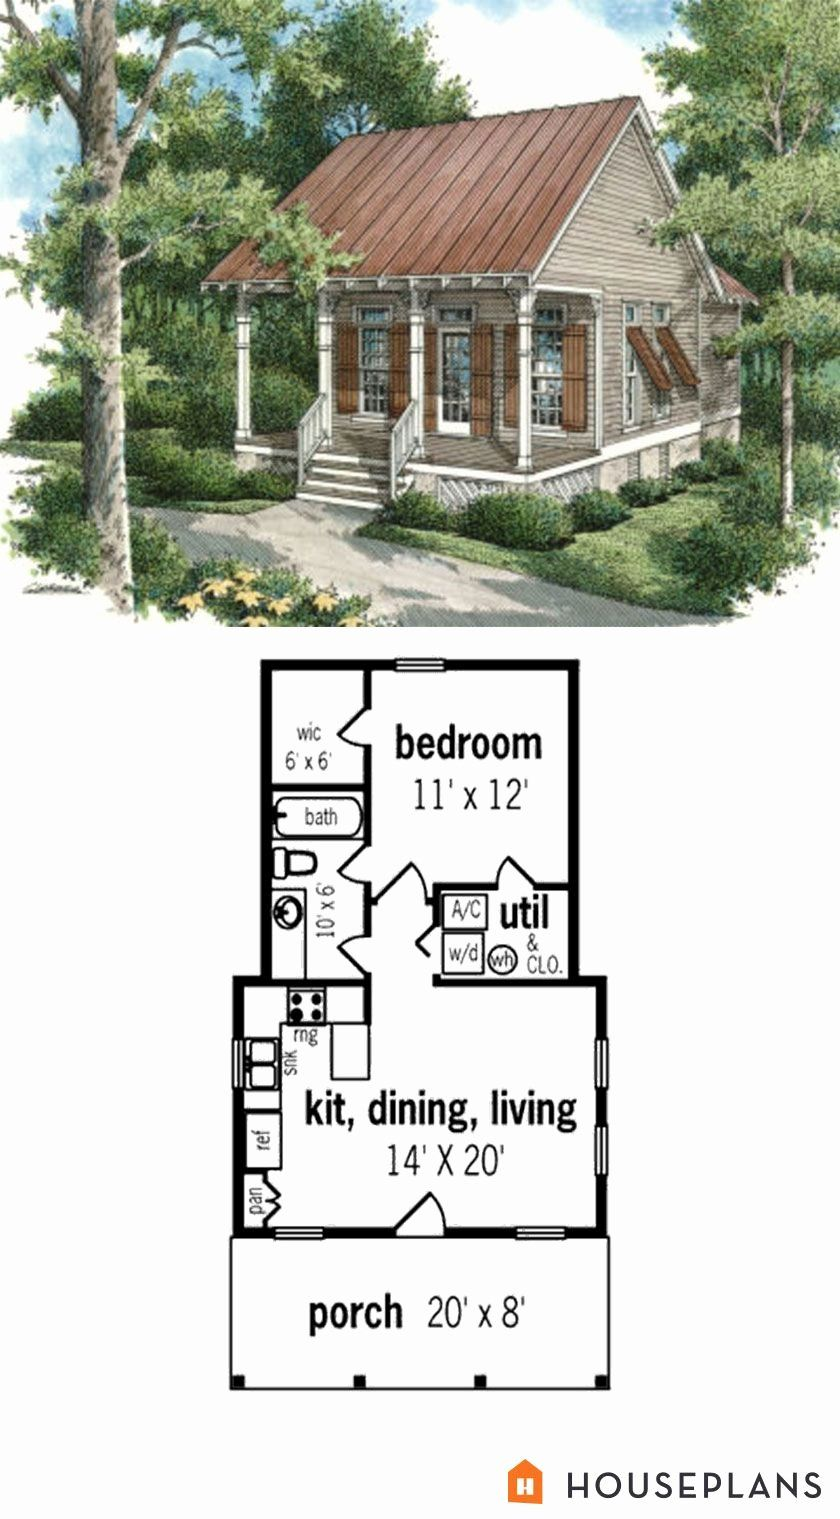 Tiny Cabin House Plans Awesome 559sft Tiny Beach Cottage 1bed 1bath Houseplans Plan 45 334 Beach House Plans House Plans Farmhouse Small Beach House Plans